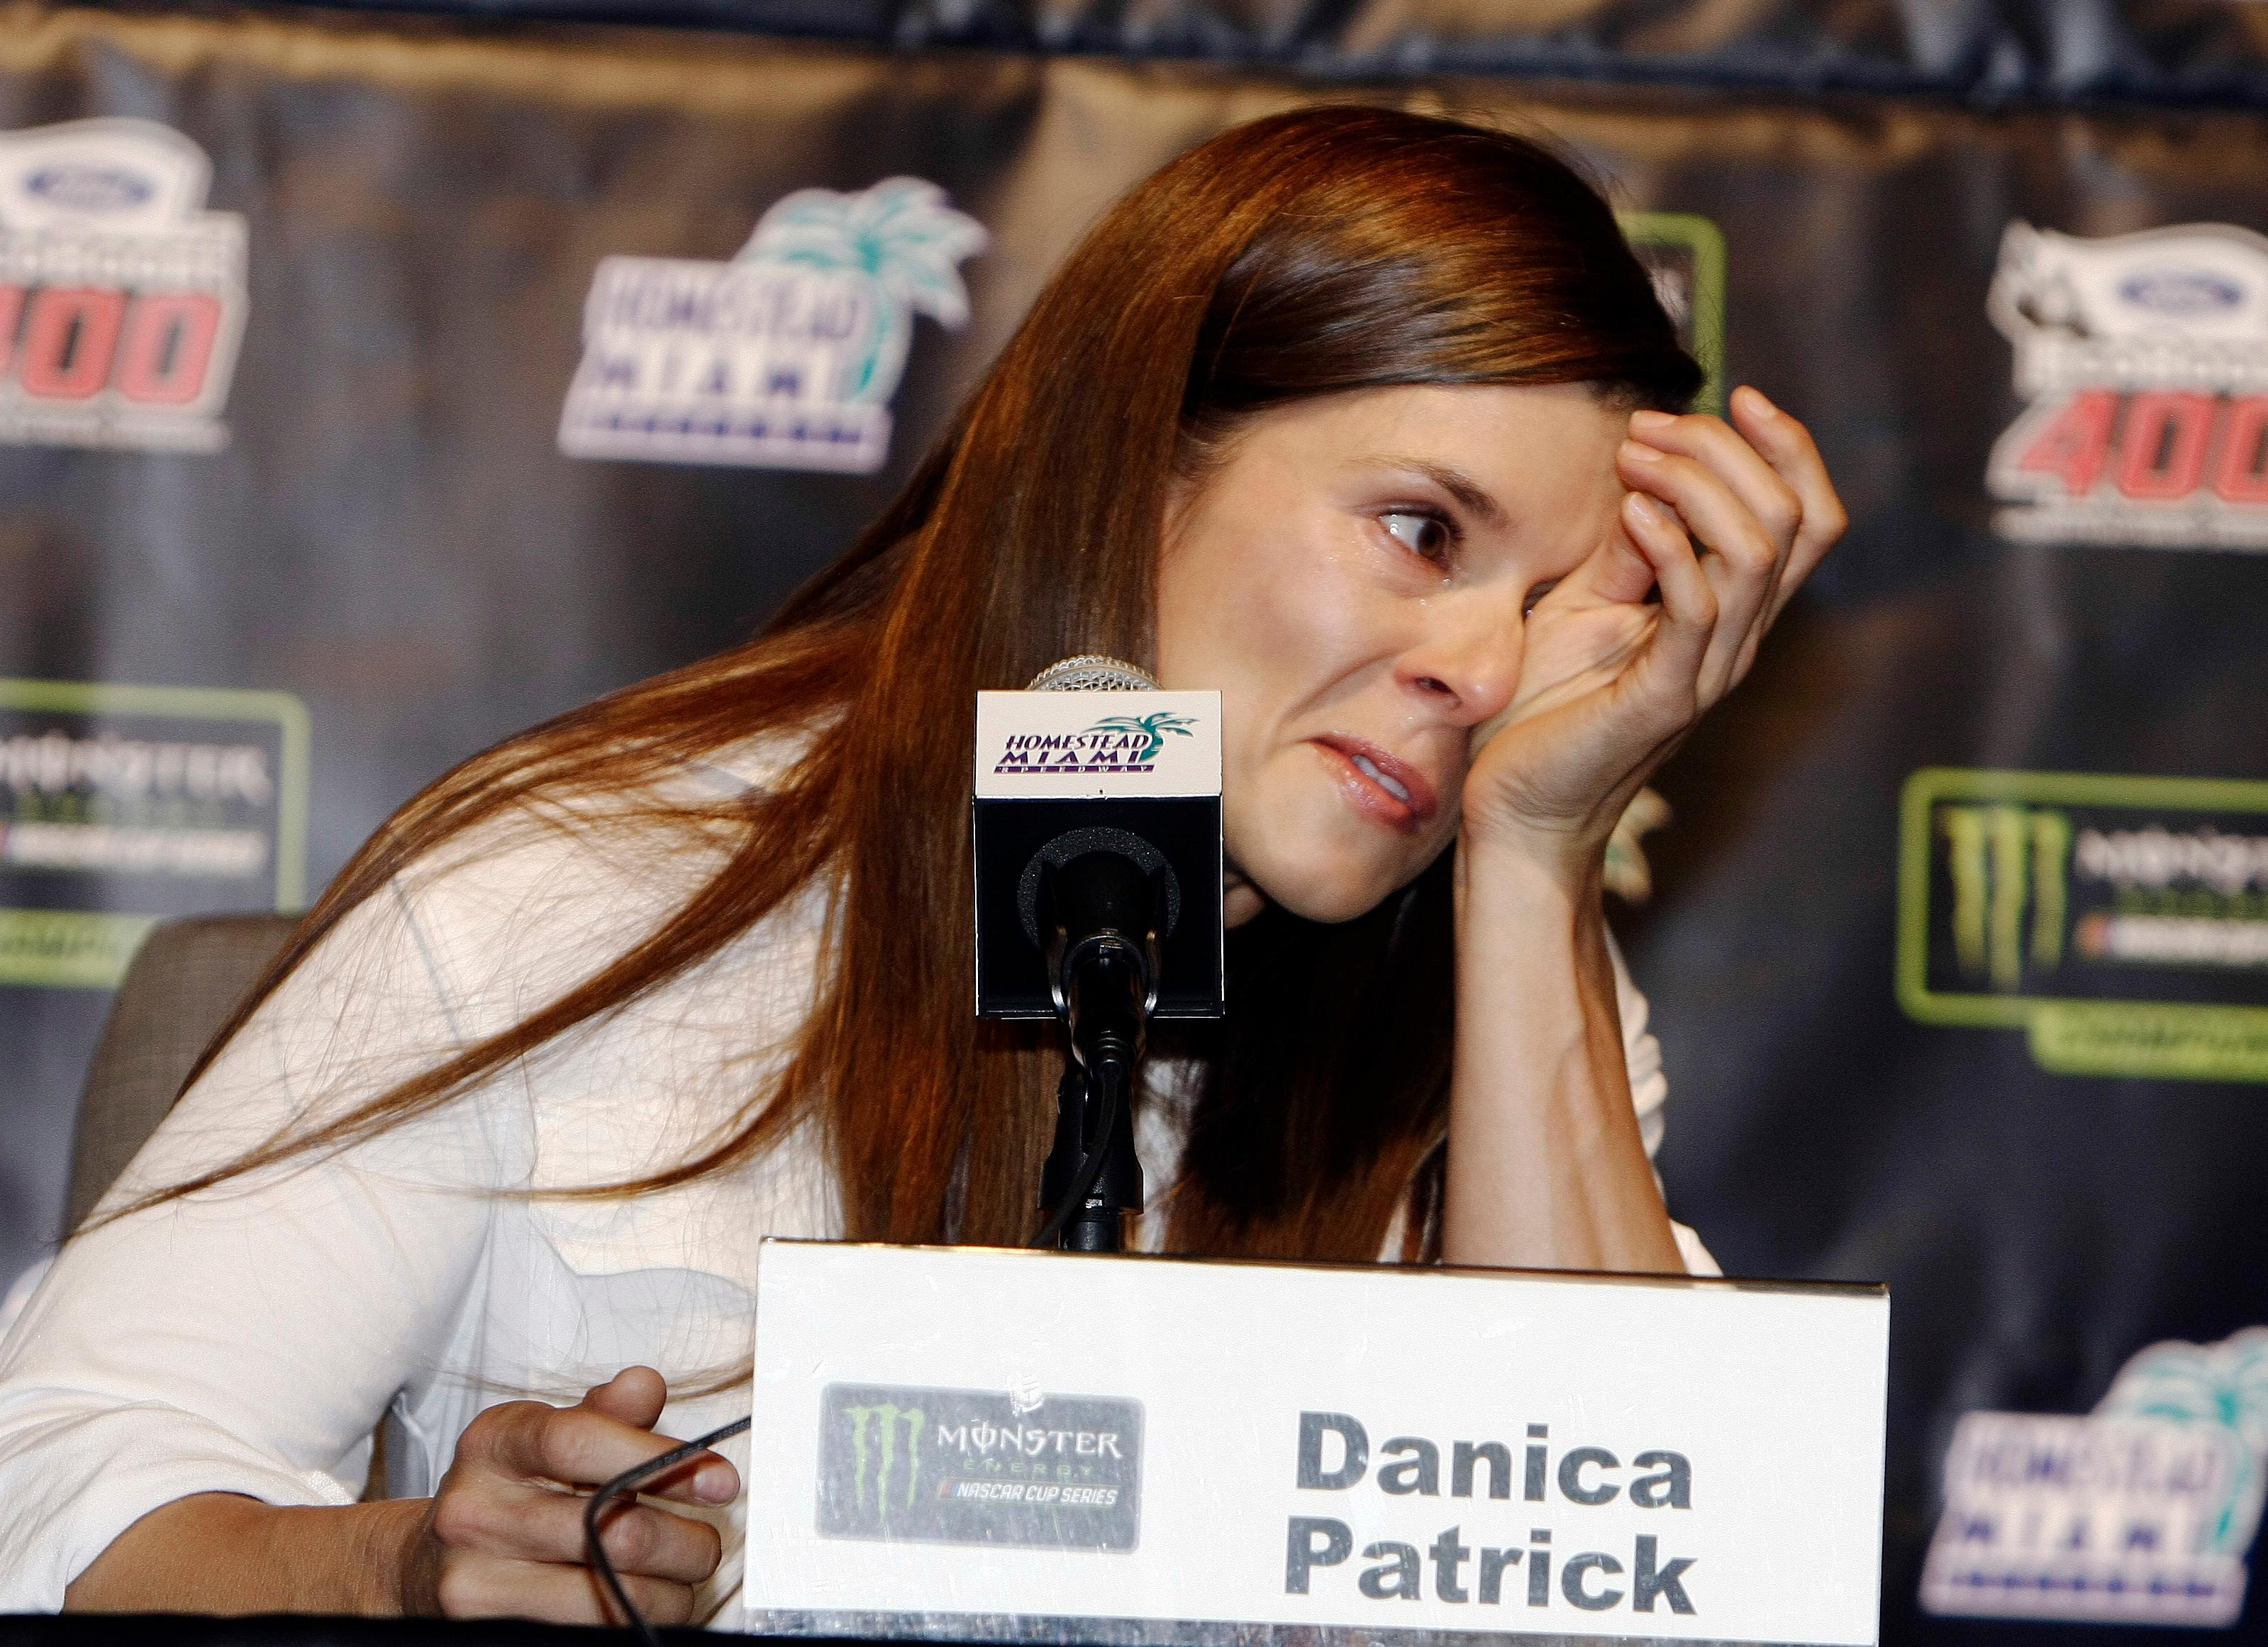 Danica Patrick wipes away tears as he speaks with the media during a news conference before Sunday's NASCAR Cup Series auto race at Homestead-Miami Speedway in Homestead, Fla., Friday, Nov. 17, 2017. Patrick will end her full-time racing career after running in next year's Daytona 500 and Indianapolis 500. ( AP Photo/Darryl Graham)